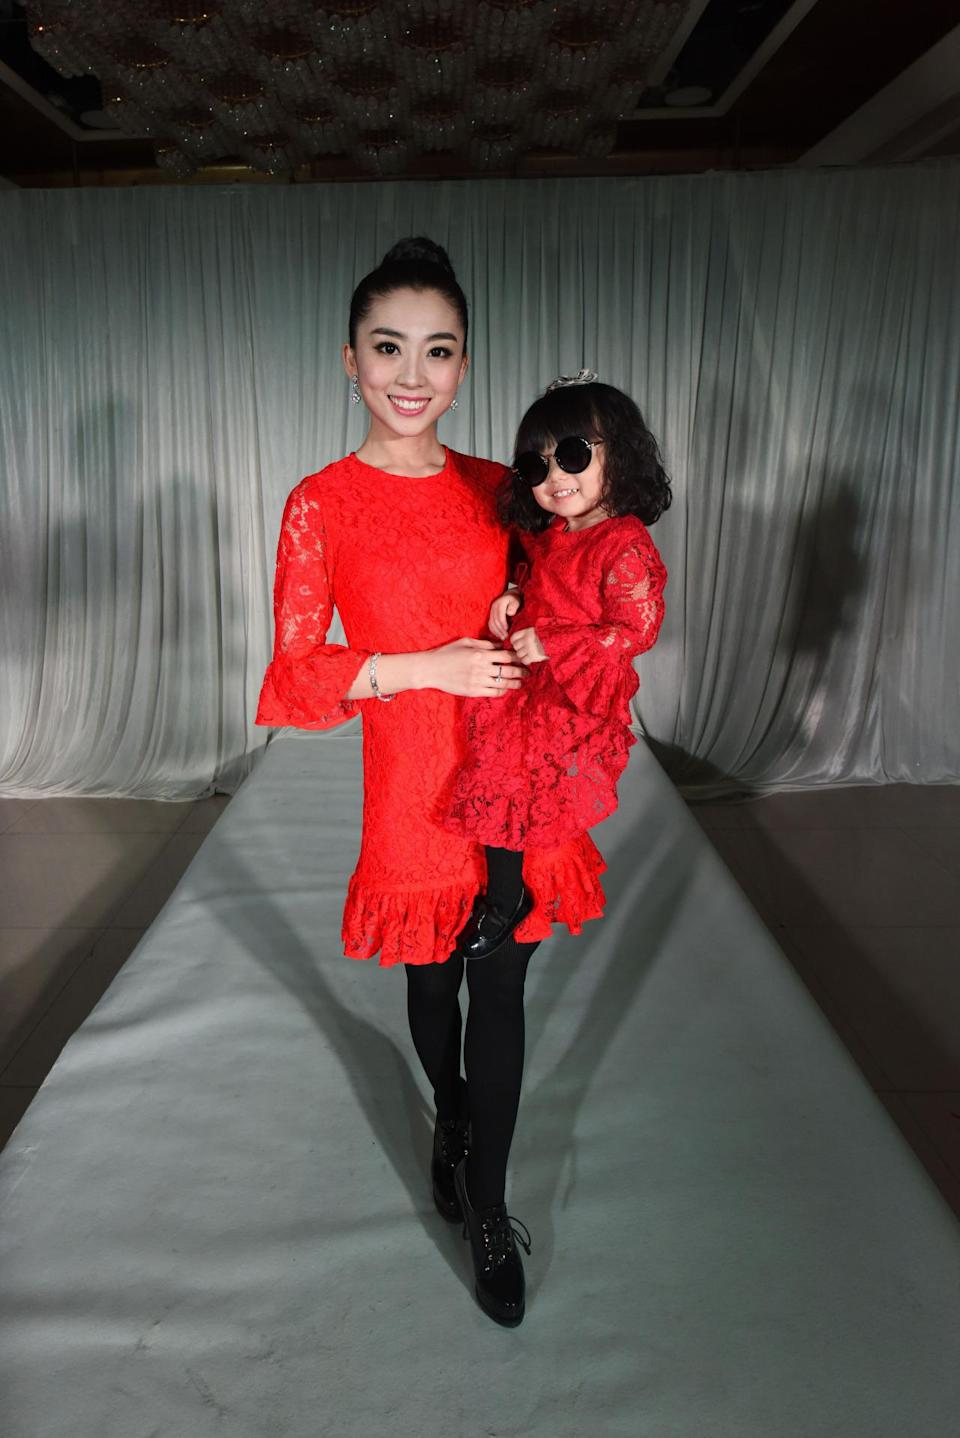 If this wasn't a fake fashion show in China, one could assume they were taking part in Dolce & Gabbana's most recent runway show that celebrated families. But, alas, this pair just threw their own over-the-top fashion party.